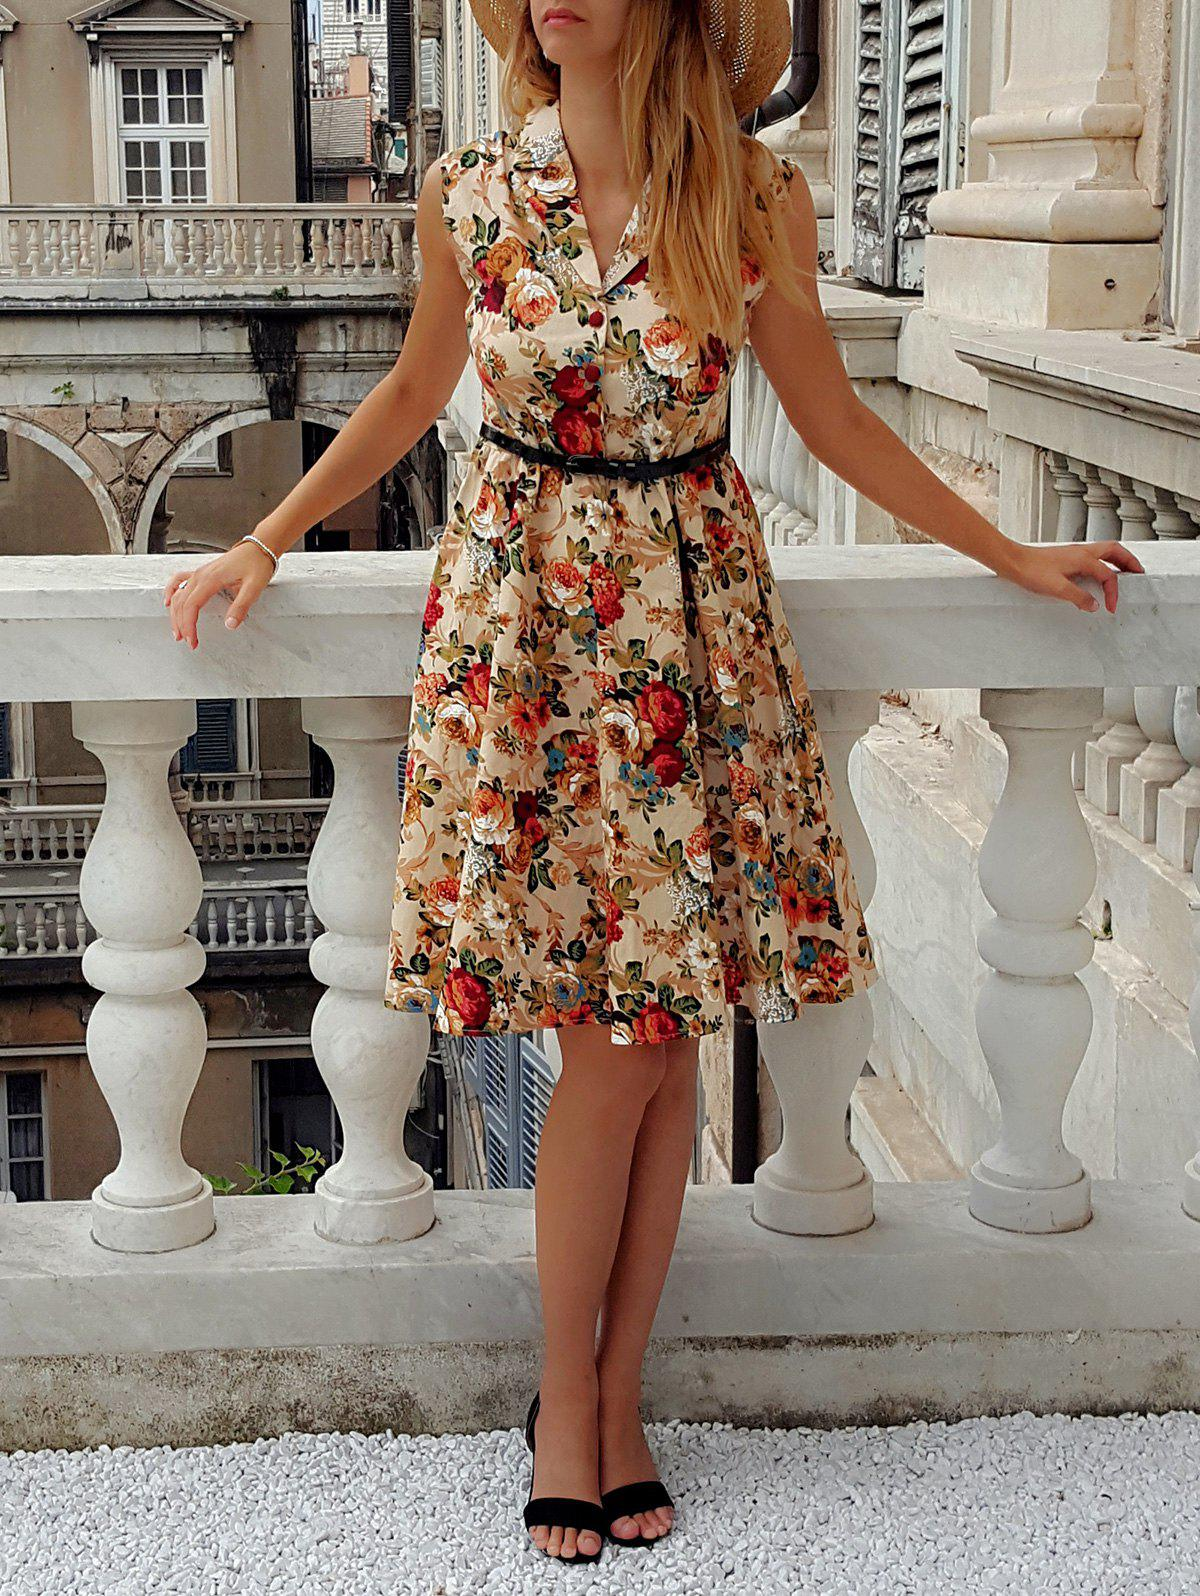 Retro Turn-Down Collar Sleeveless Floral Print Women's Ball Gown Dress - APRICOT 2XL